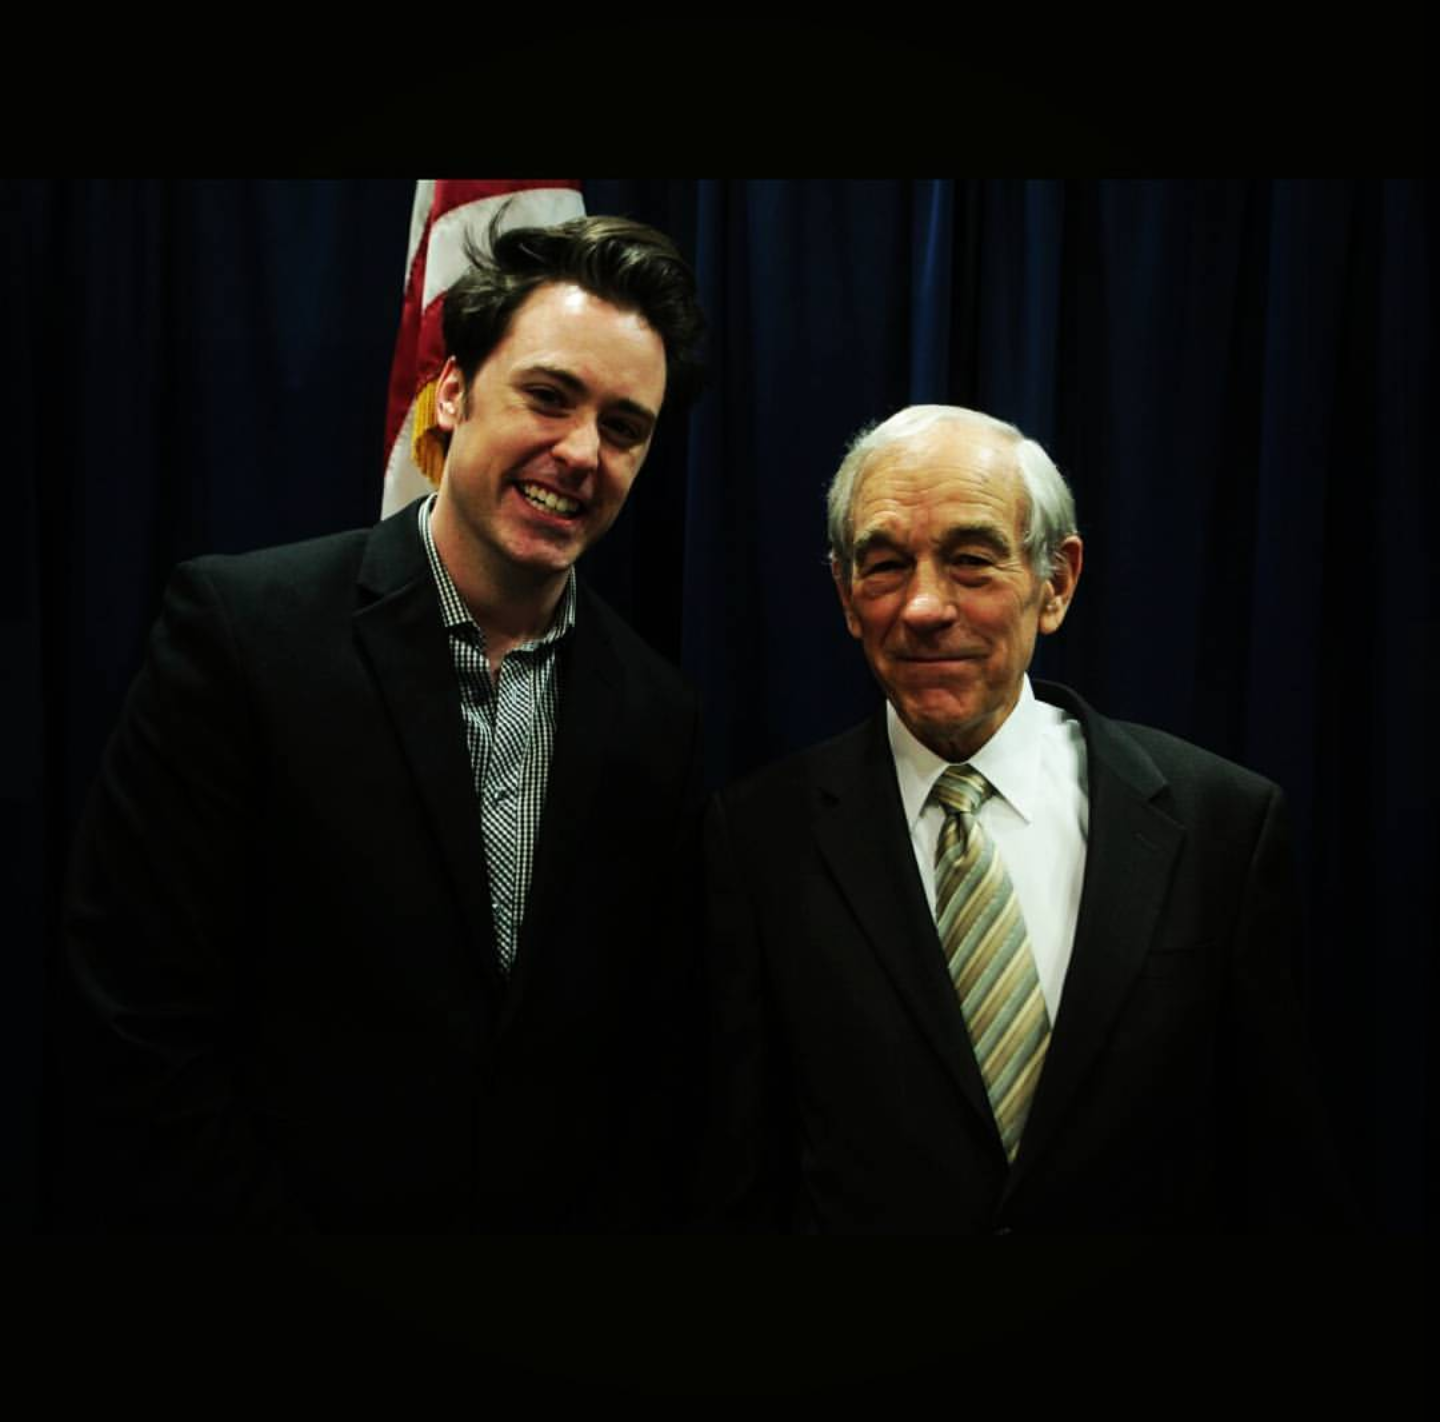 Joshua D Glawson with Ron Paul